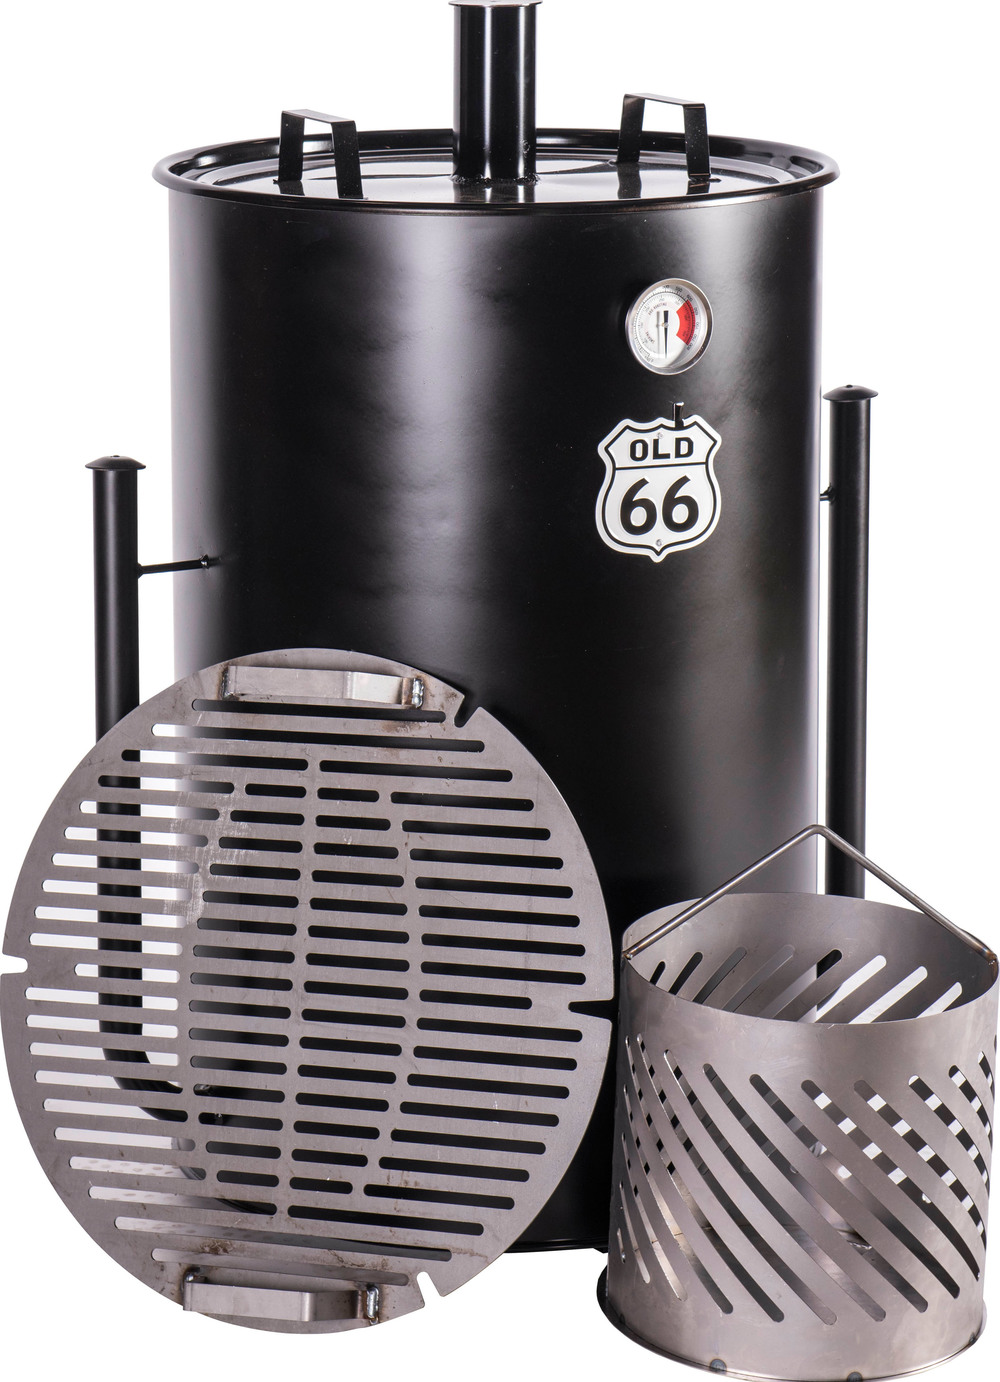 OLD 66 55-Gallon Drum Smoker